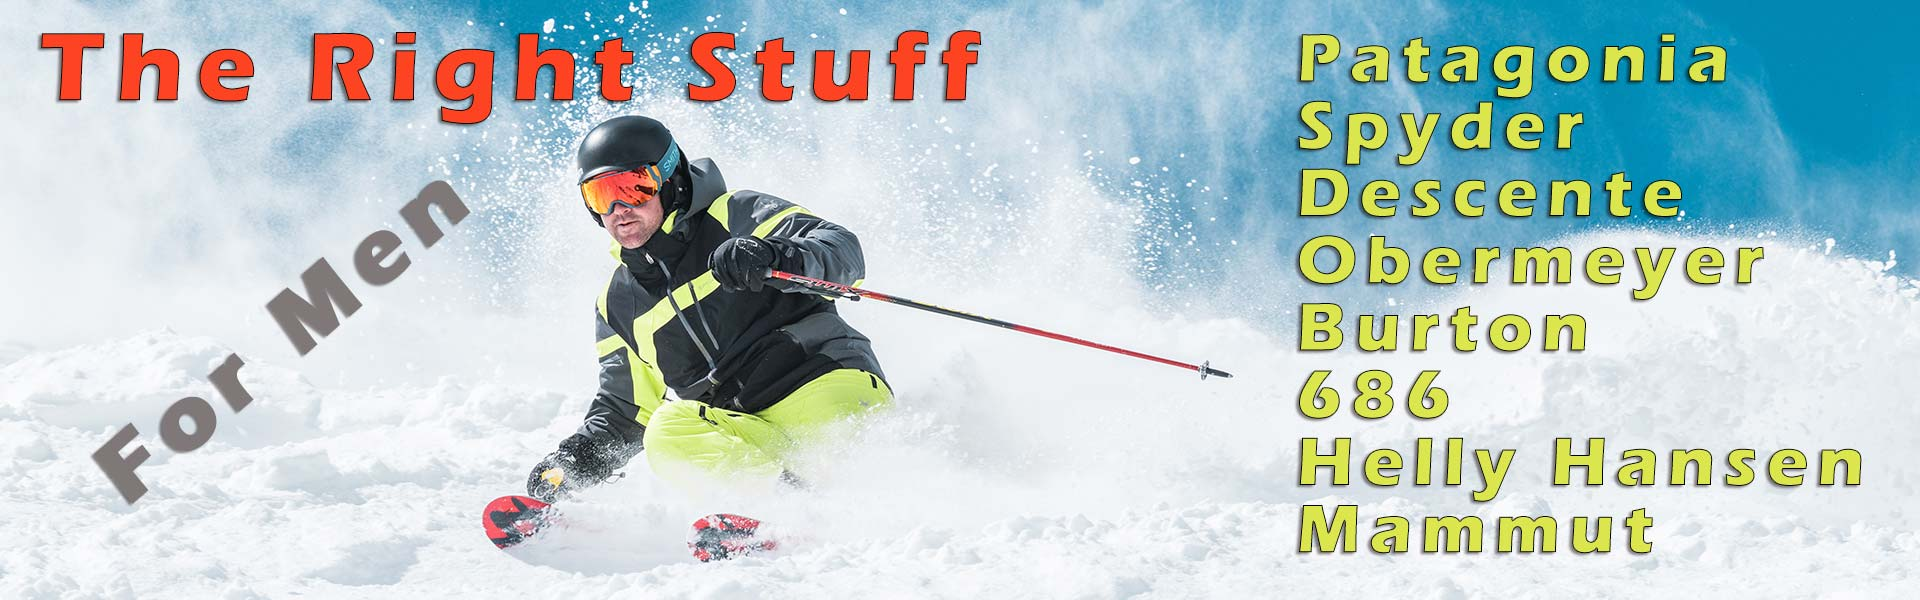 Best Selection of Ski Clothing & Equipment for Men